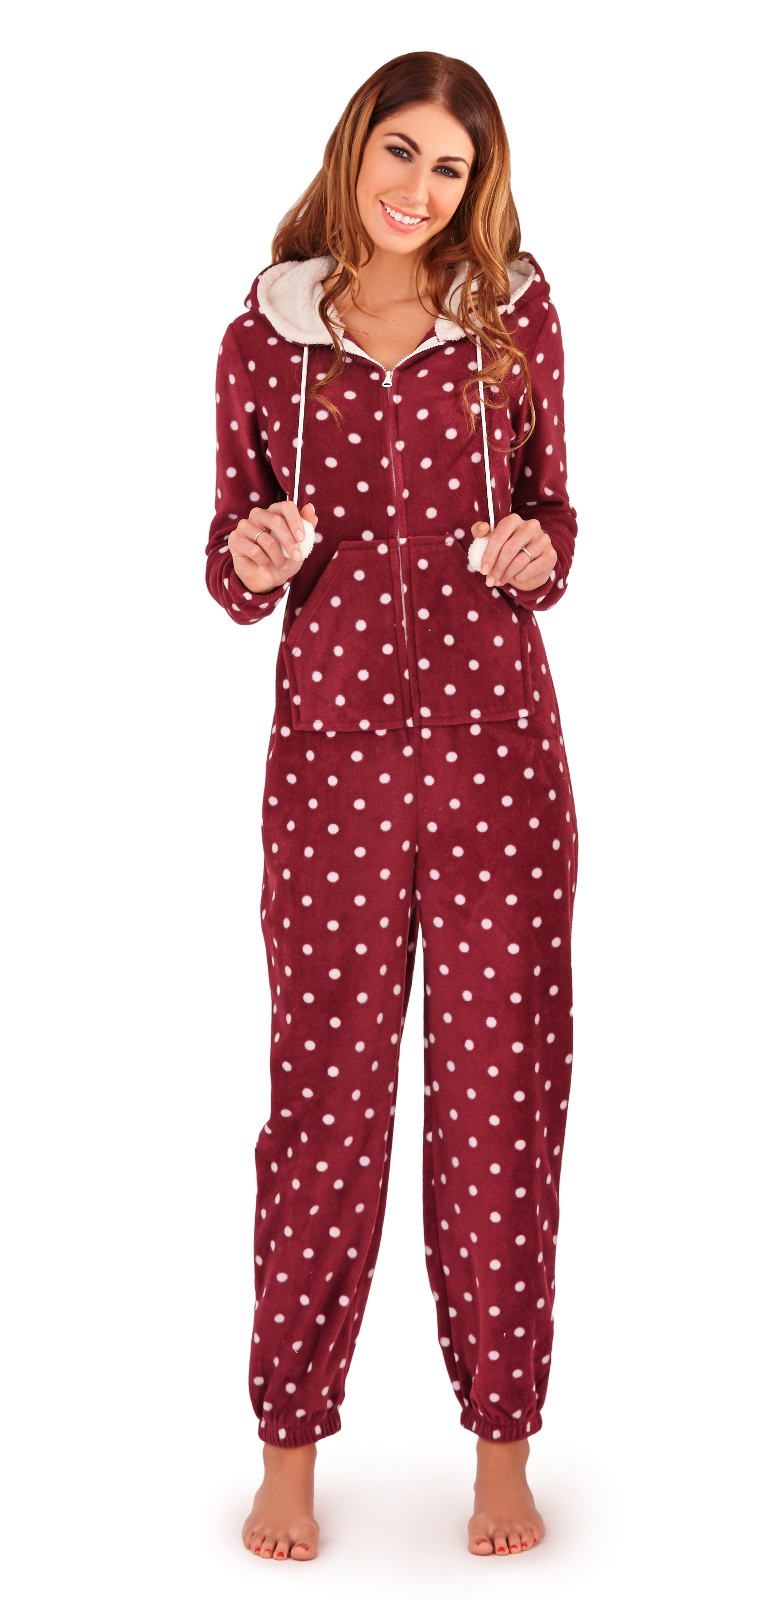 We spent 43 hours on research, videography, and editing, to review the top choices for this wiki. For those of you who wish to relive the comfort and security of your childhood, try one of these supremely plush adult onesies.